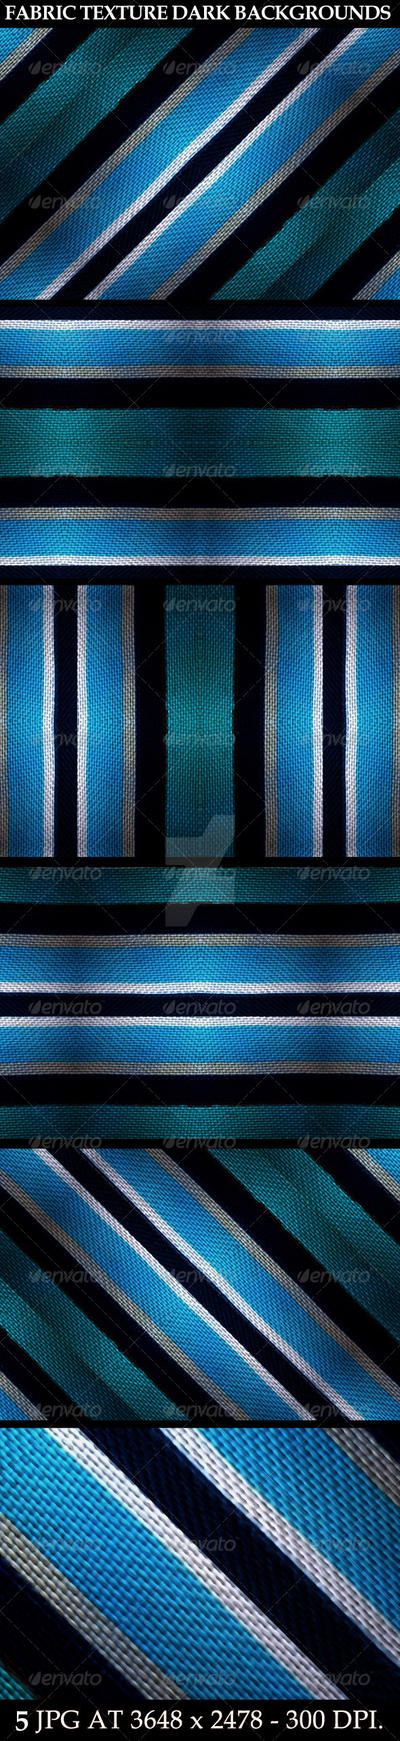 Preview-FABRIC-TEXTURE-DARK-BACKGROUNDS by danfleites